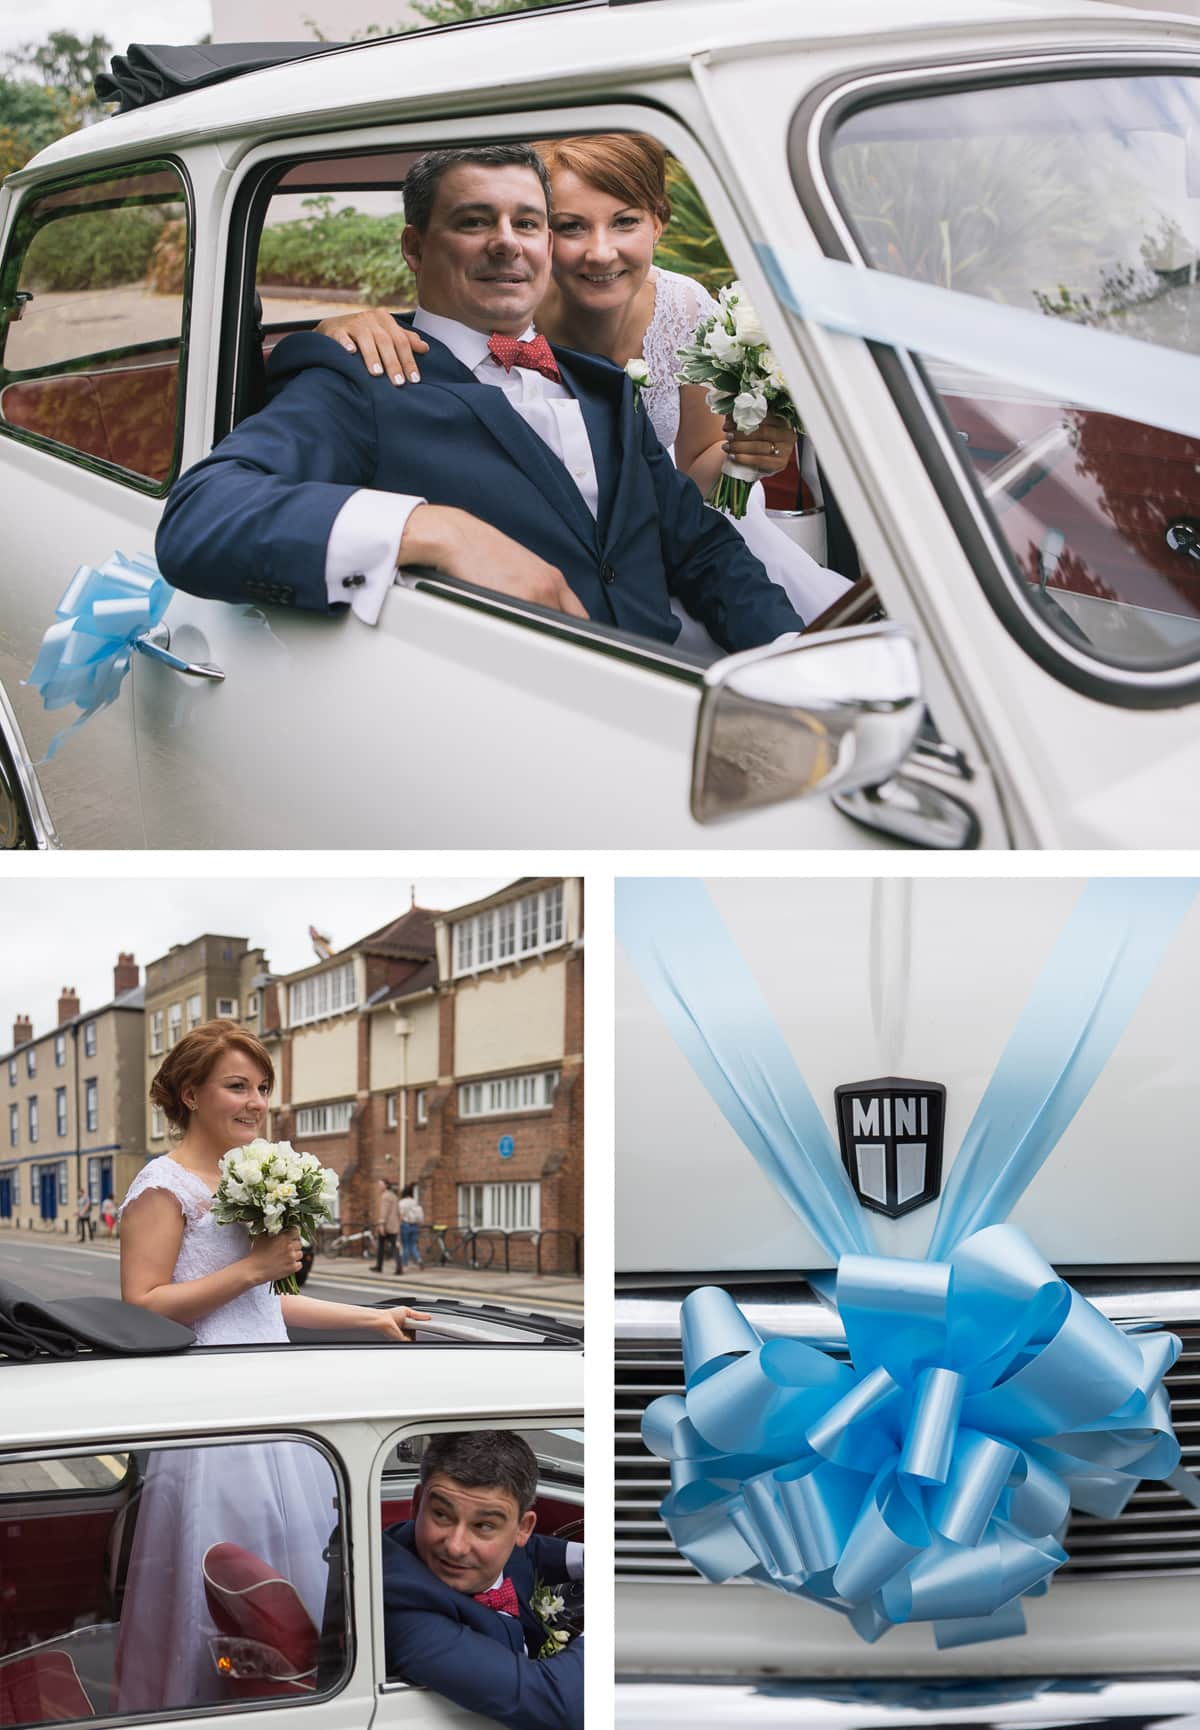 Collage of images from left: Bride stands up in vintage mini with head through sunroof; bride and groom seated together in vintage mini; close up of pale blue ribbon on car